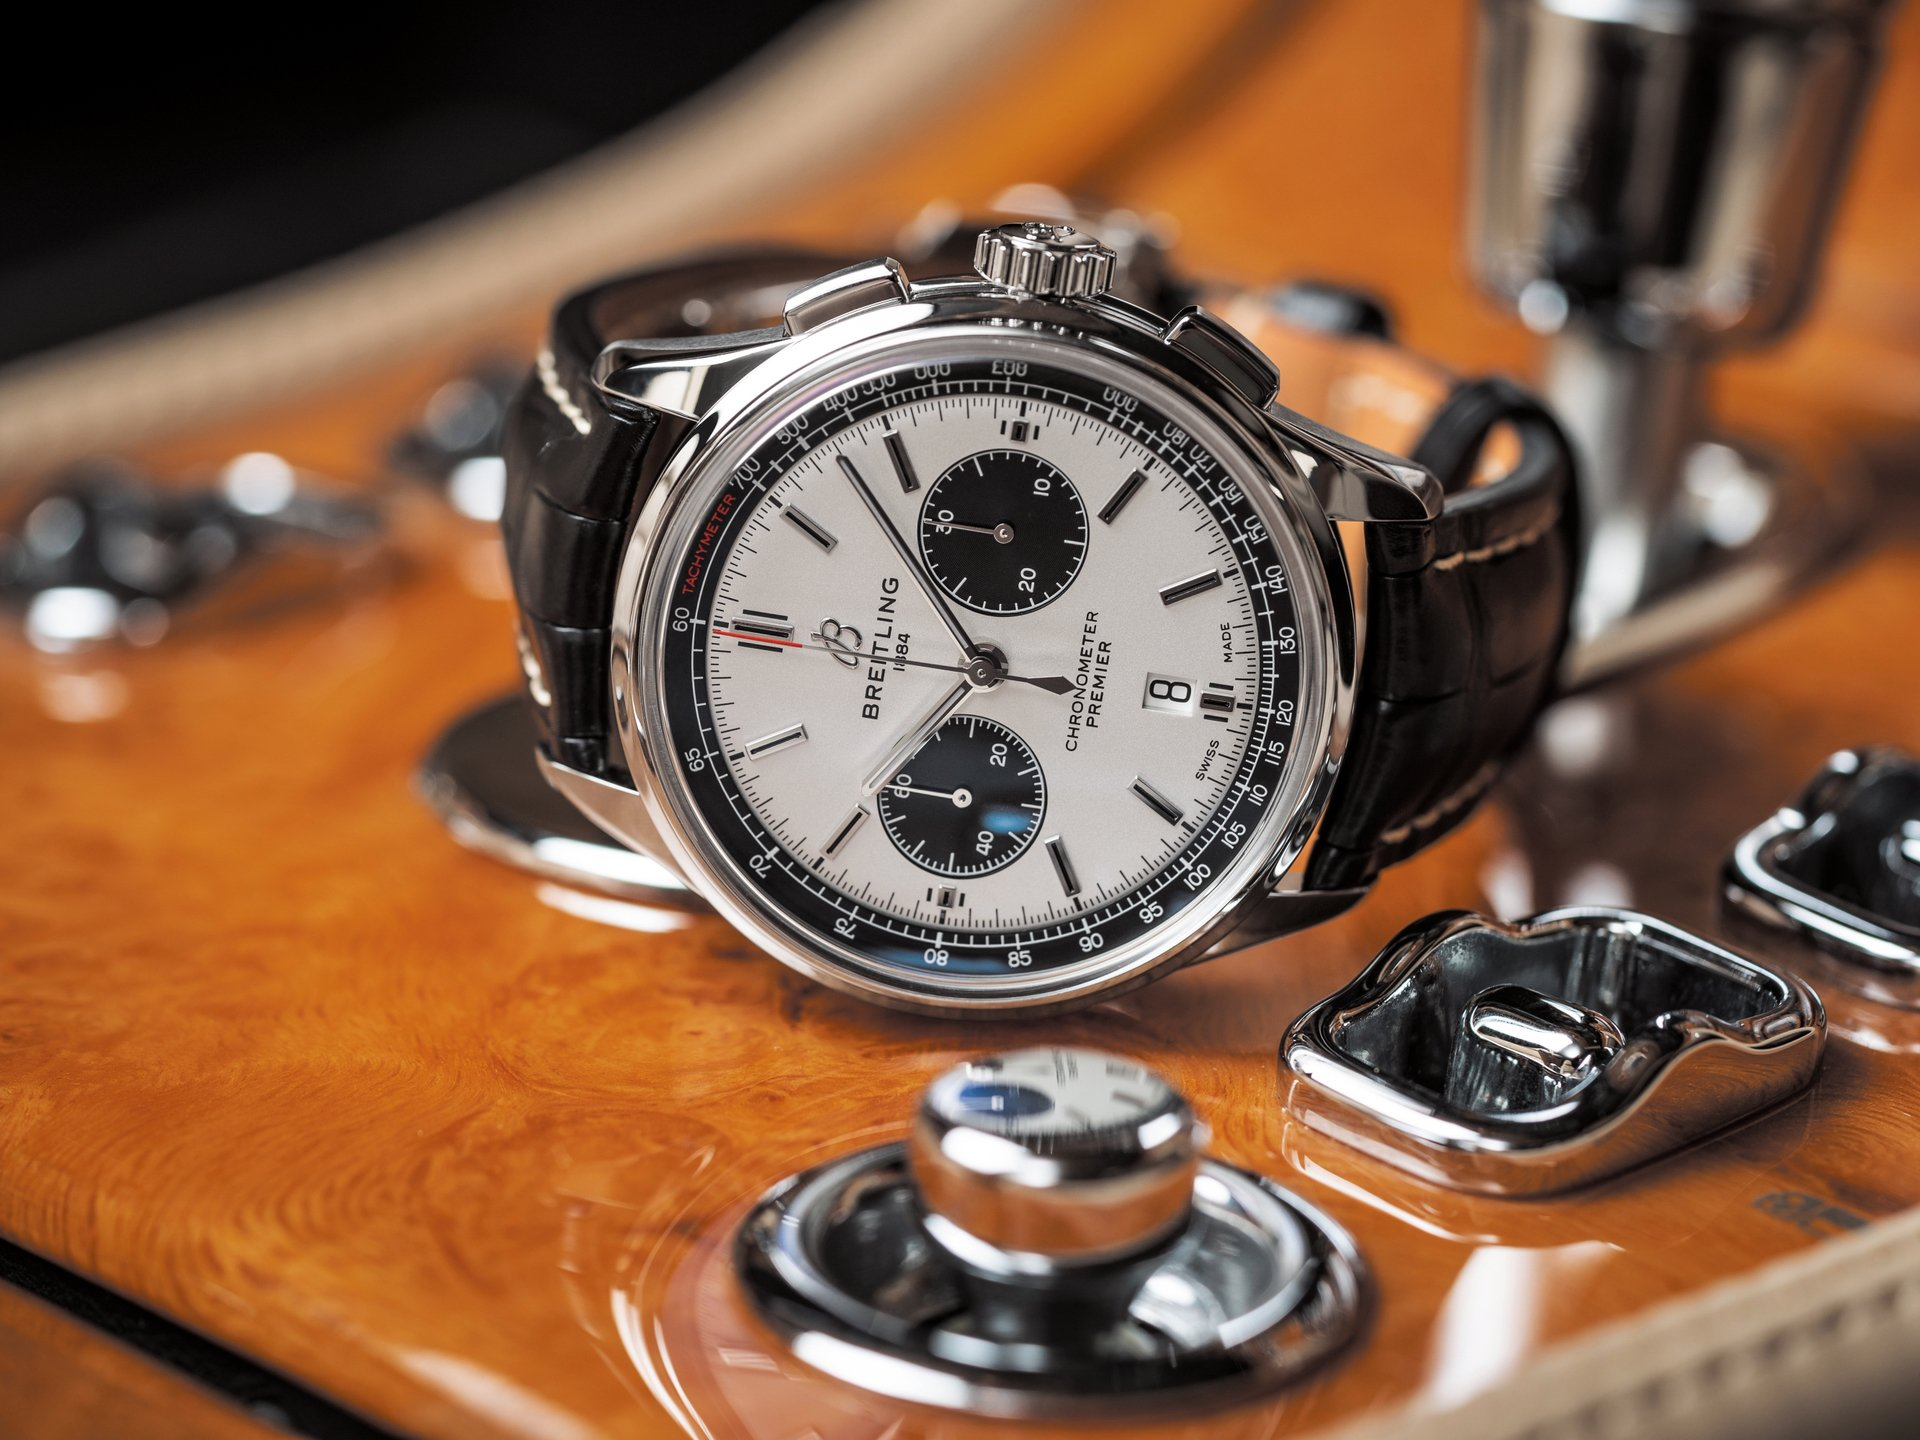 How To Tell Fake A.Lange Sohne Watches